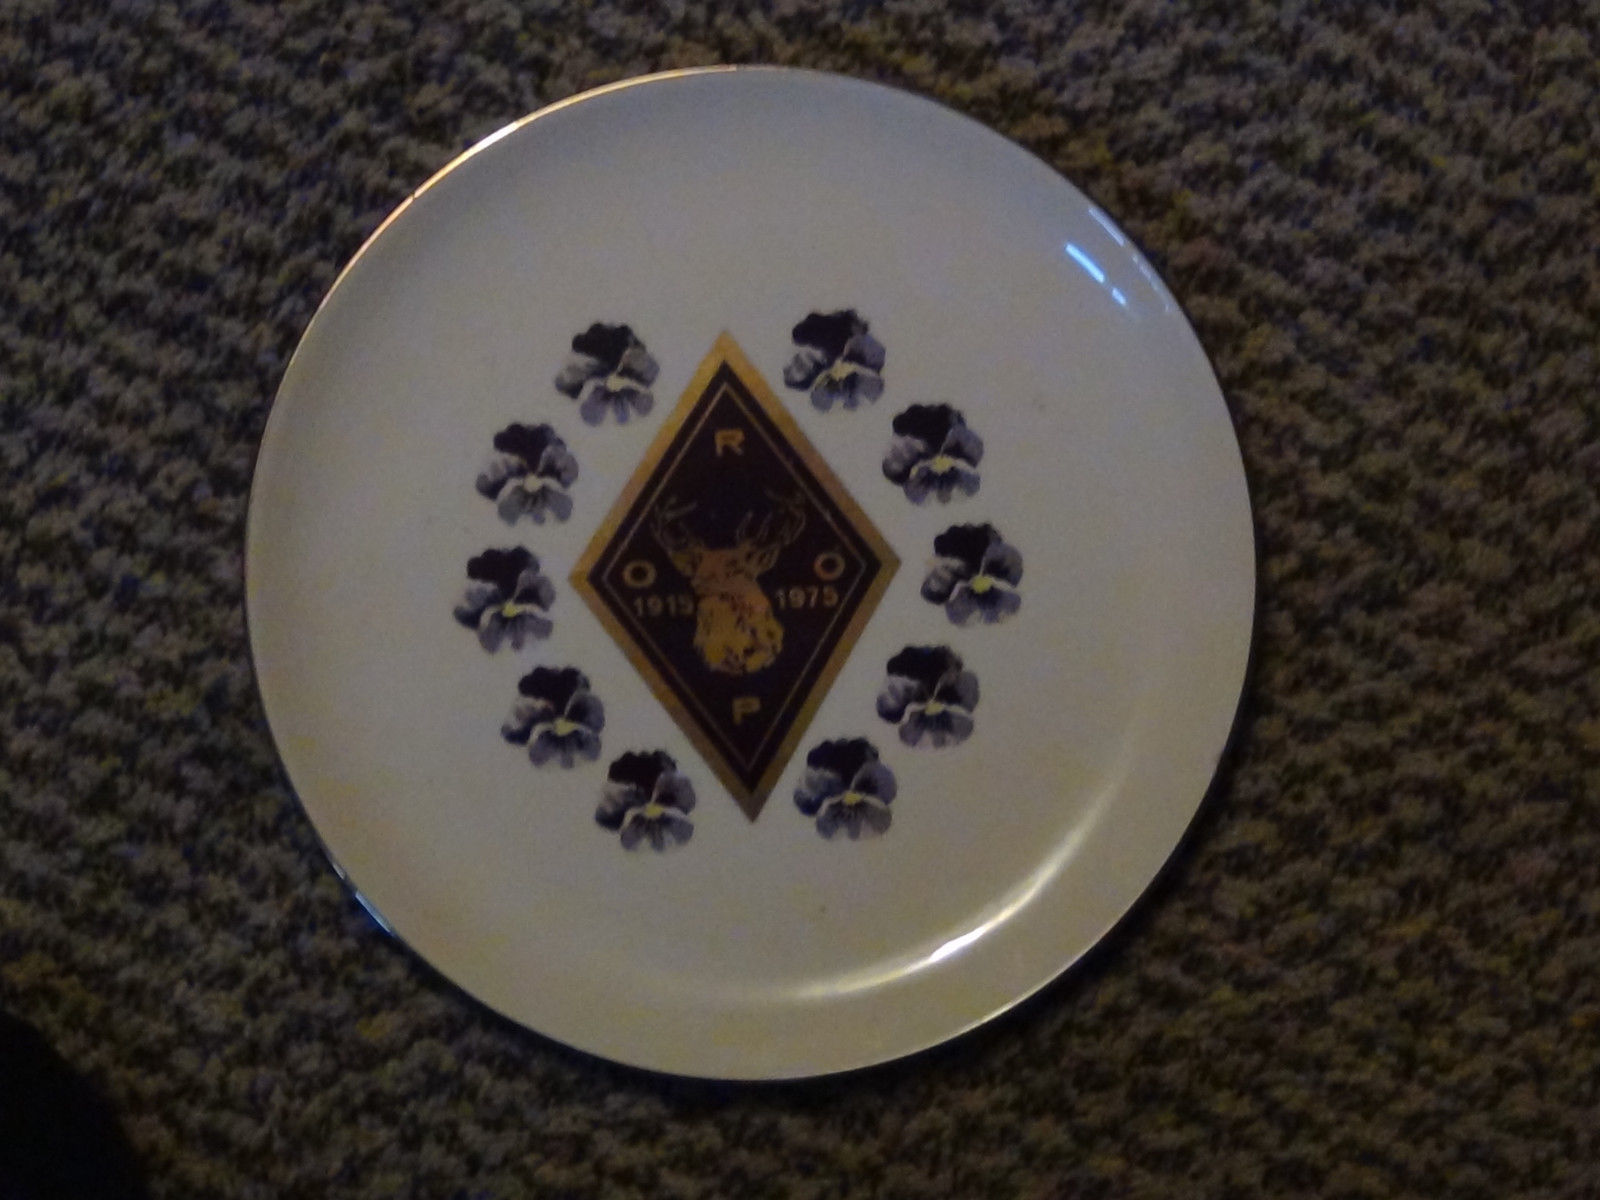 Elks, R.O.O.P. 1915 - 1975 Plate + Imperial Order Daughters of the Empire